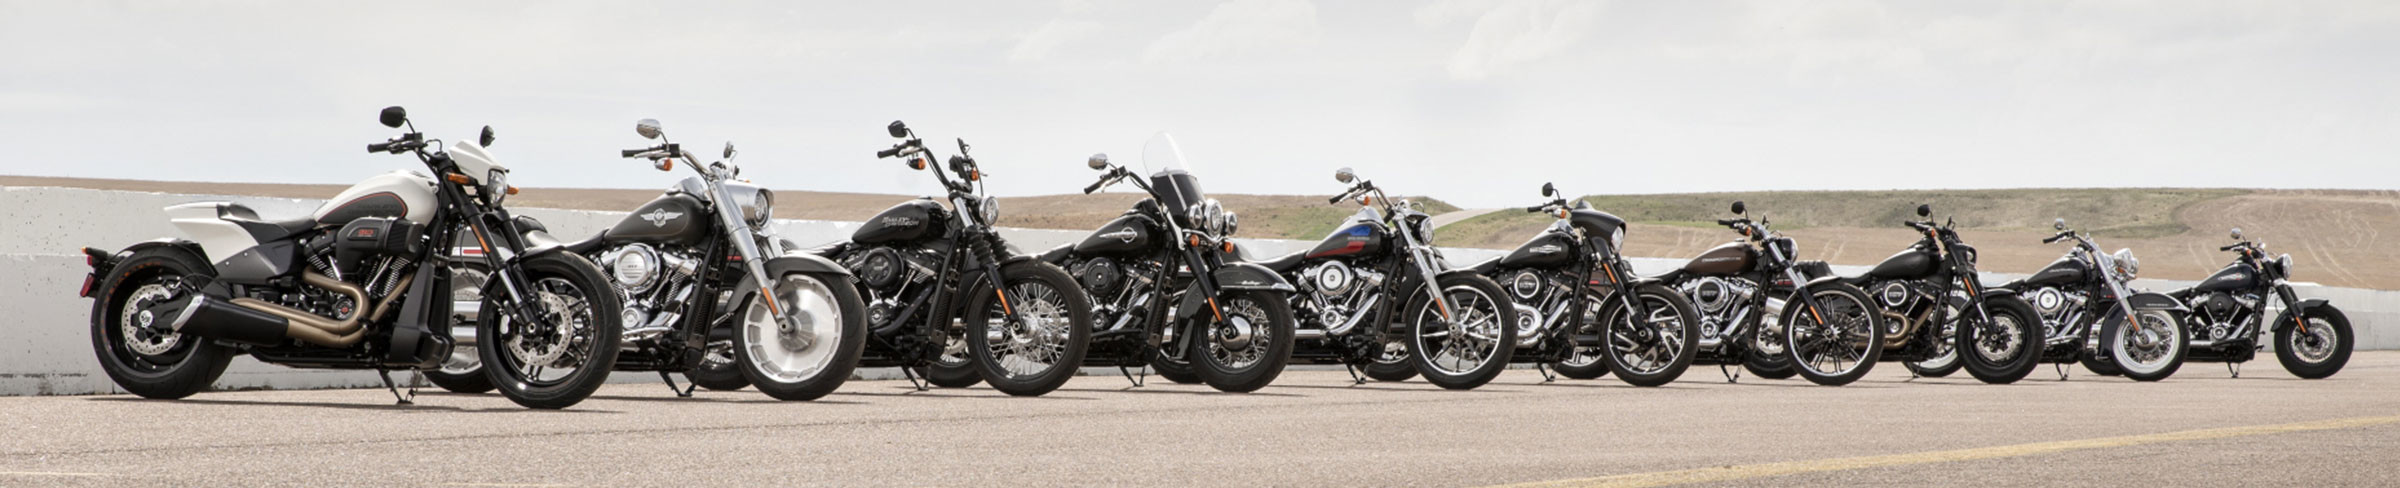 Harley Davidson Softail for sale near Mankato, MN